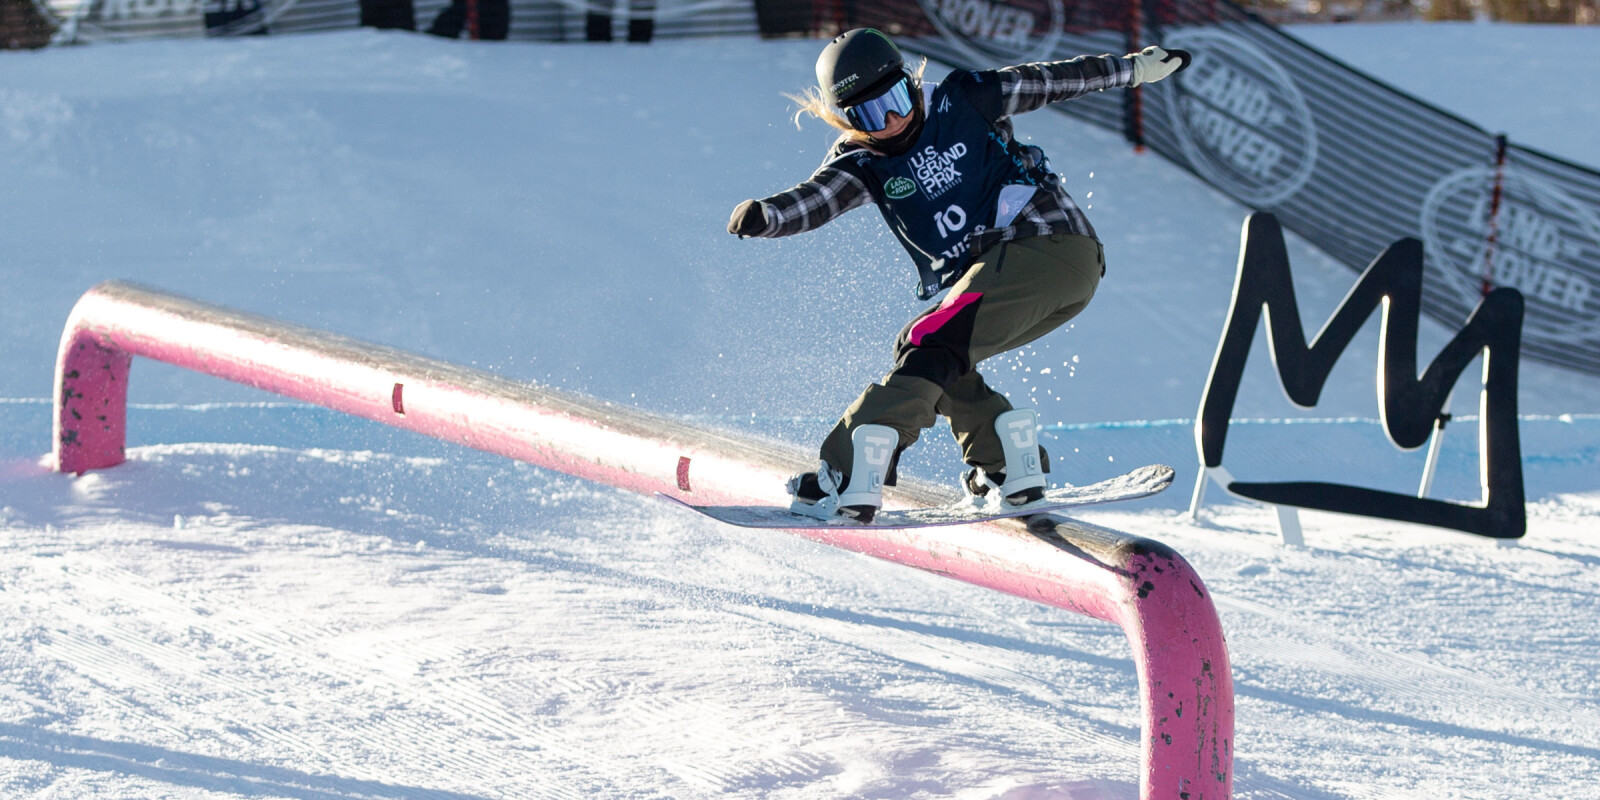 Images from US Grand Prix in Mammoth, CA.